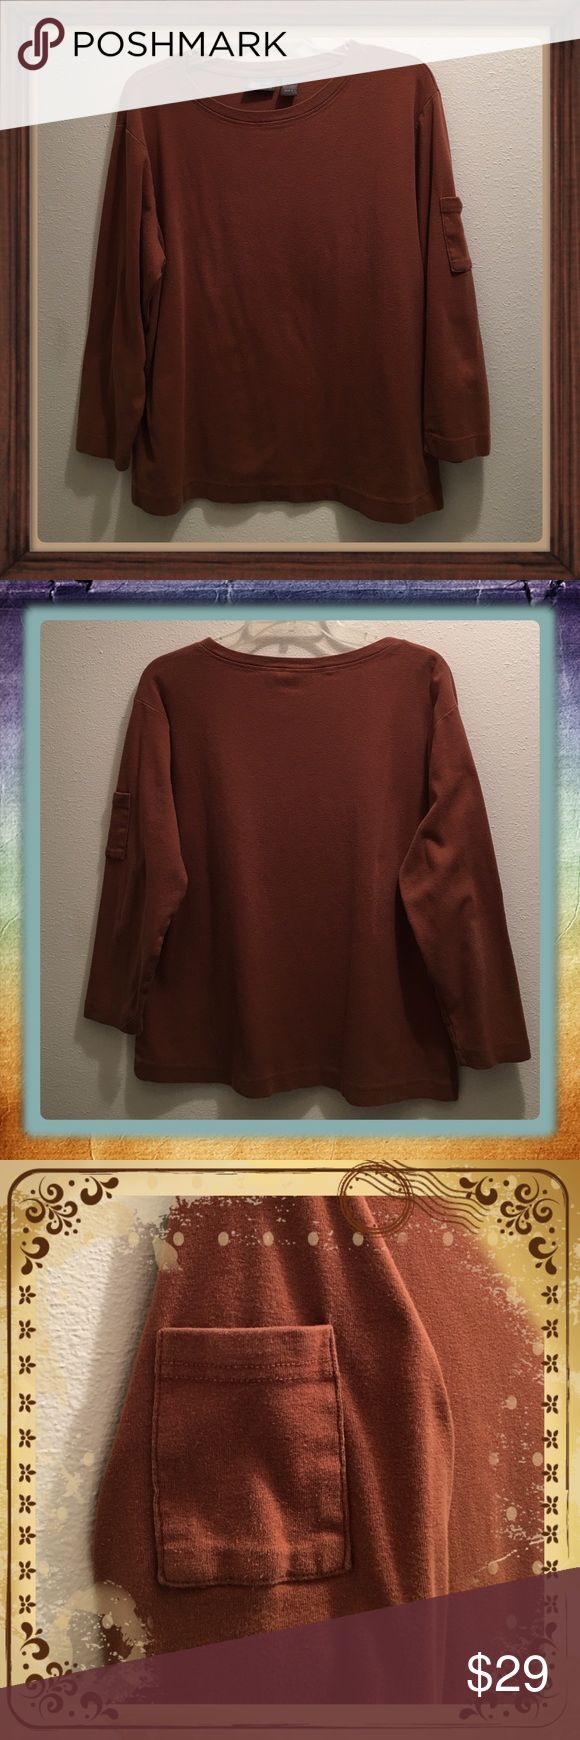 """Additions by Chico Mid Sleeve Top SZ 3 = US XL This top was worn appropriately a 1/2 dozen times before I grew out of it. It's a rust color brown, has a pocket on the Left upper arm. I got so many compliments on it & I believe it's the little pocket on the arm lol. It measures 22.5"""" from Armpit to Armpit & 24""""Long from shoulder to bottom. Chico SZ 3 is a US XL. Additions by CHICO Tops"""